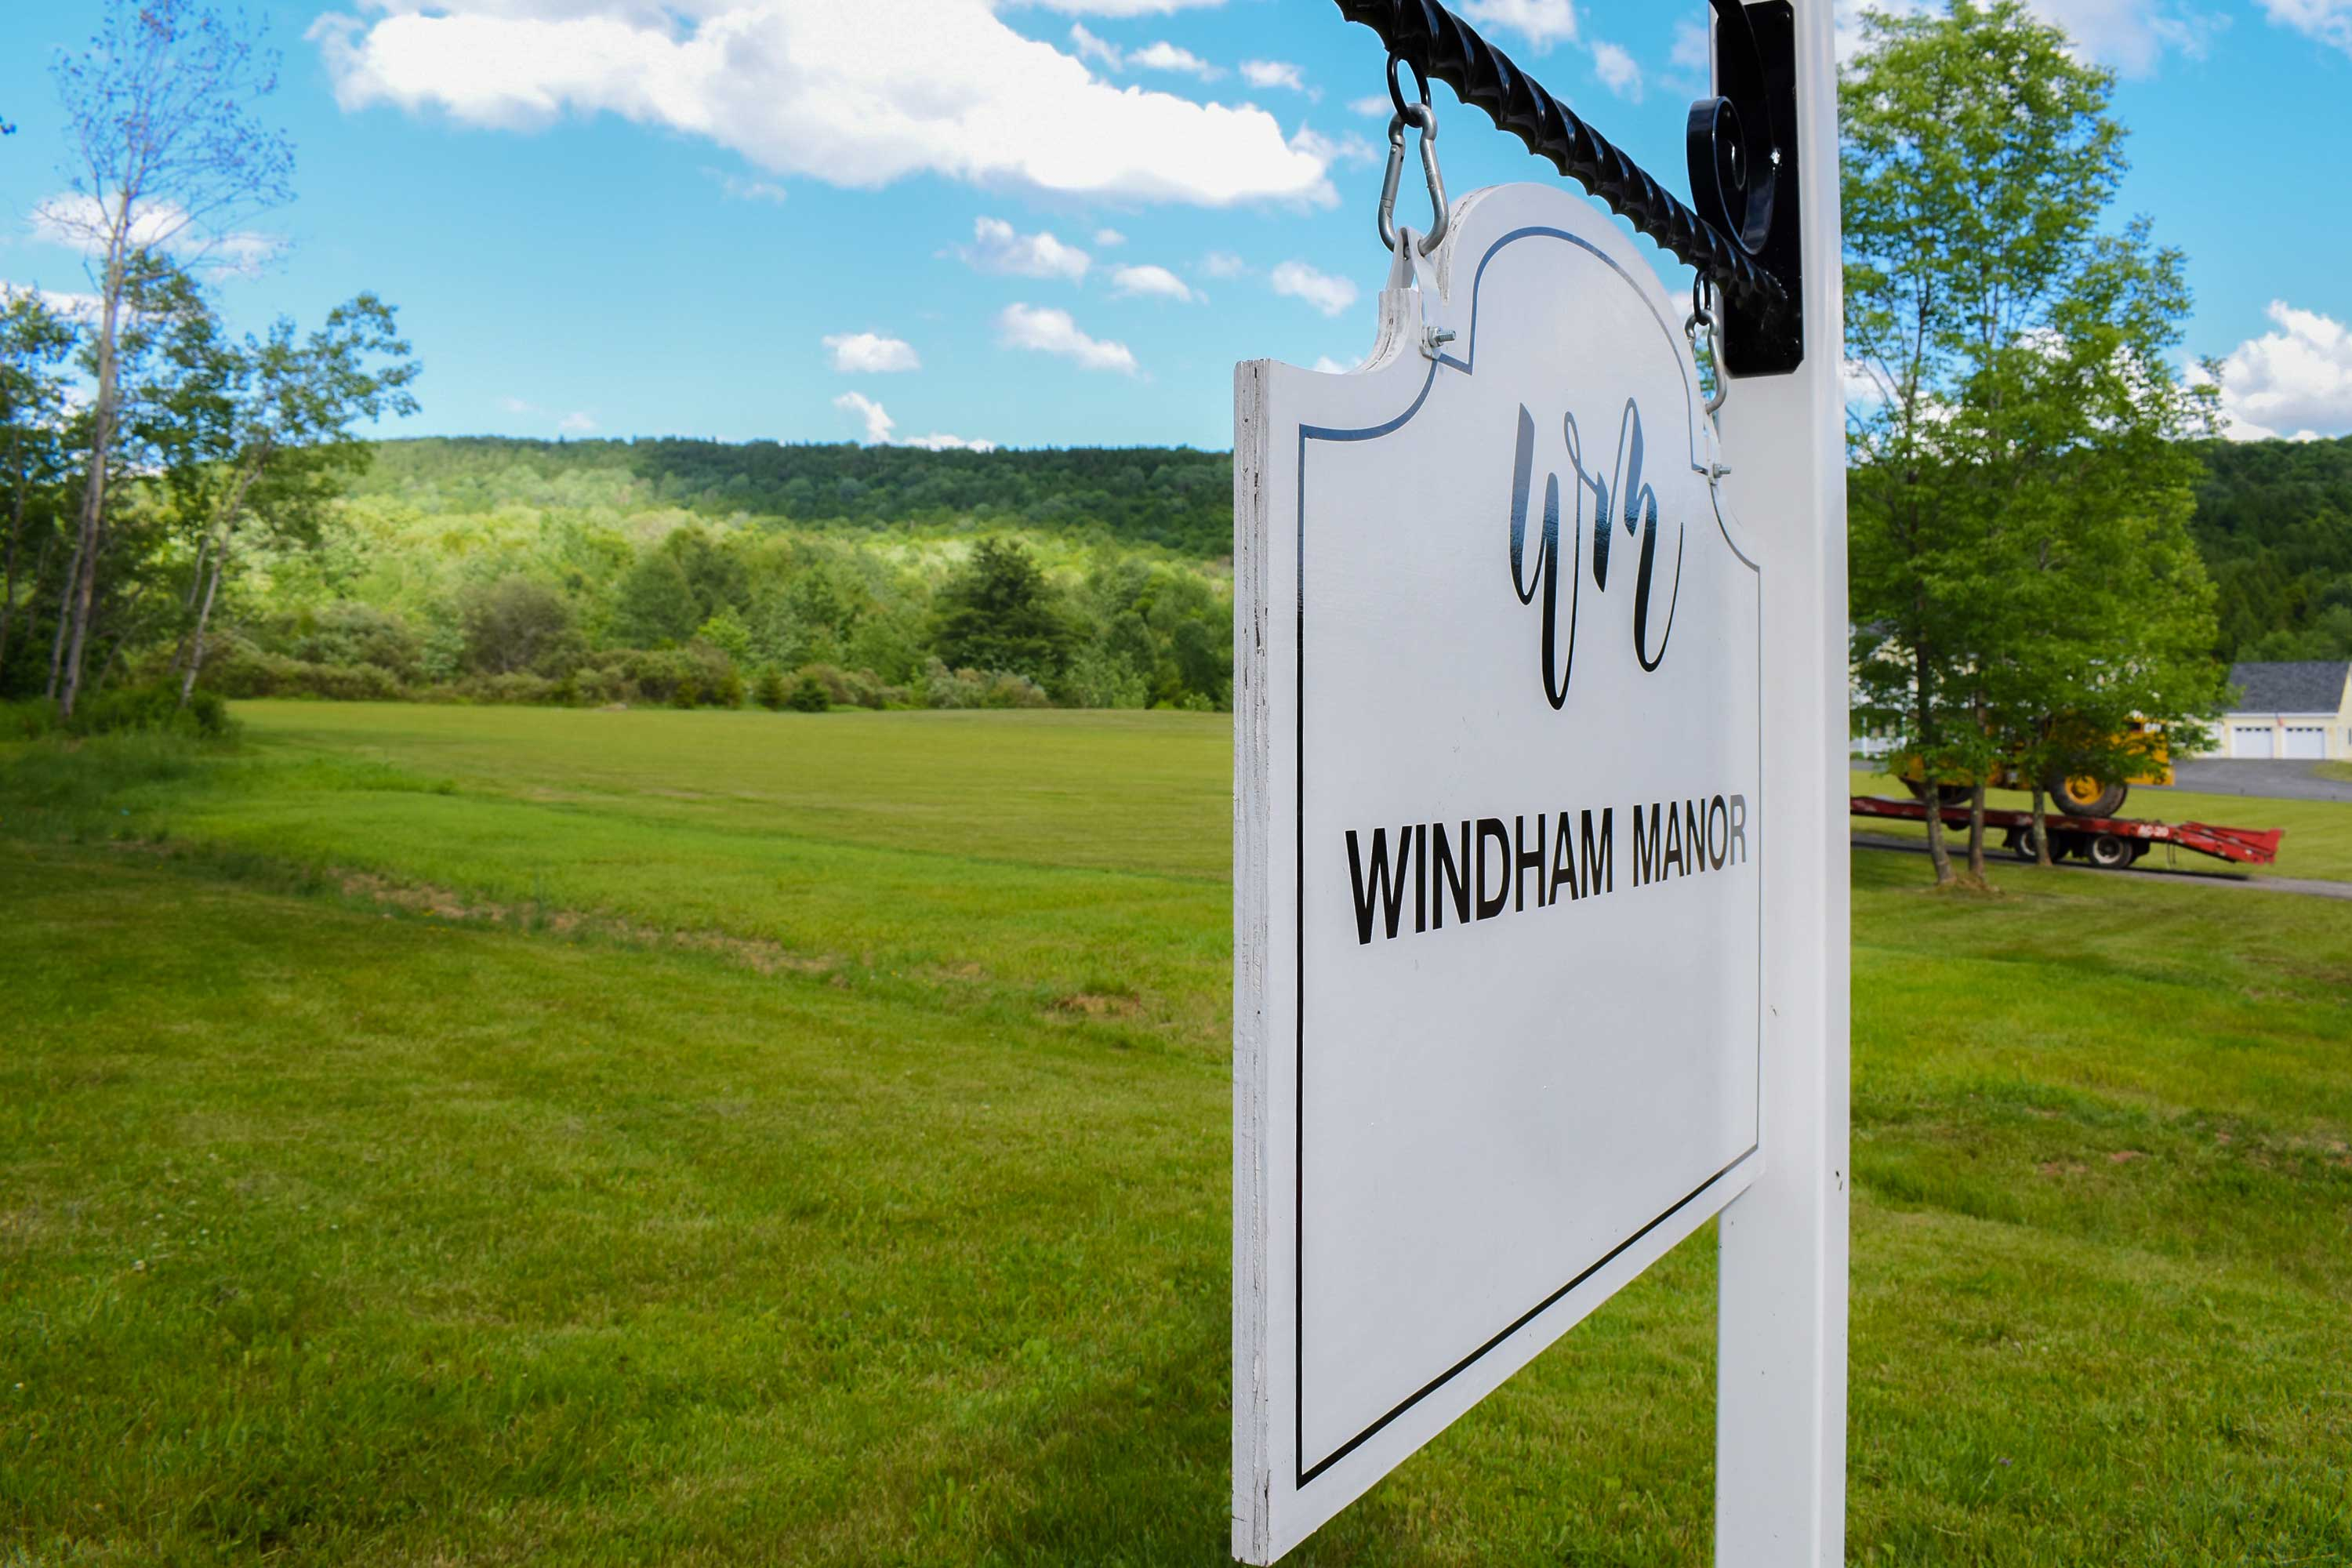 Welcome to the Windham Manor - your group vacation destination!